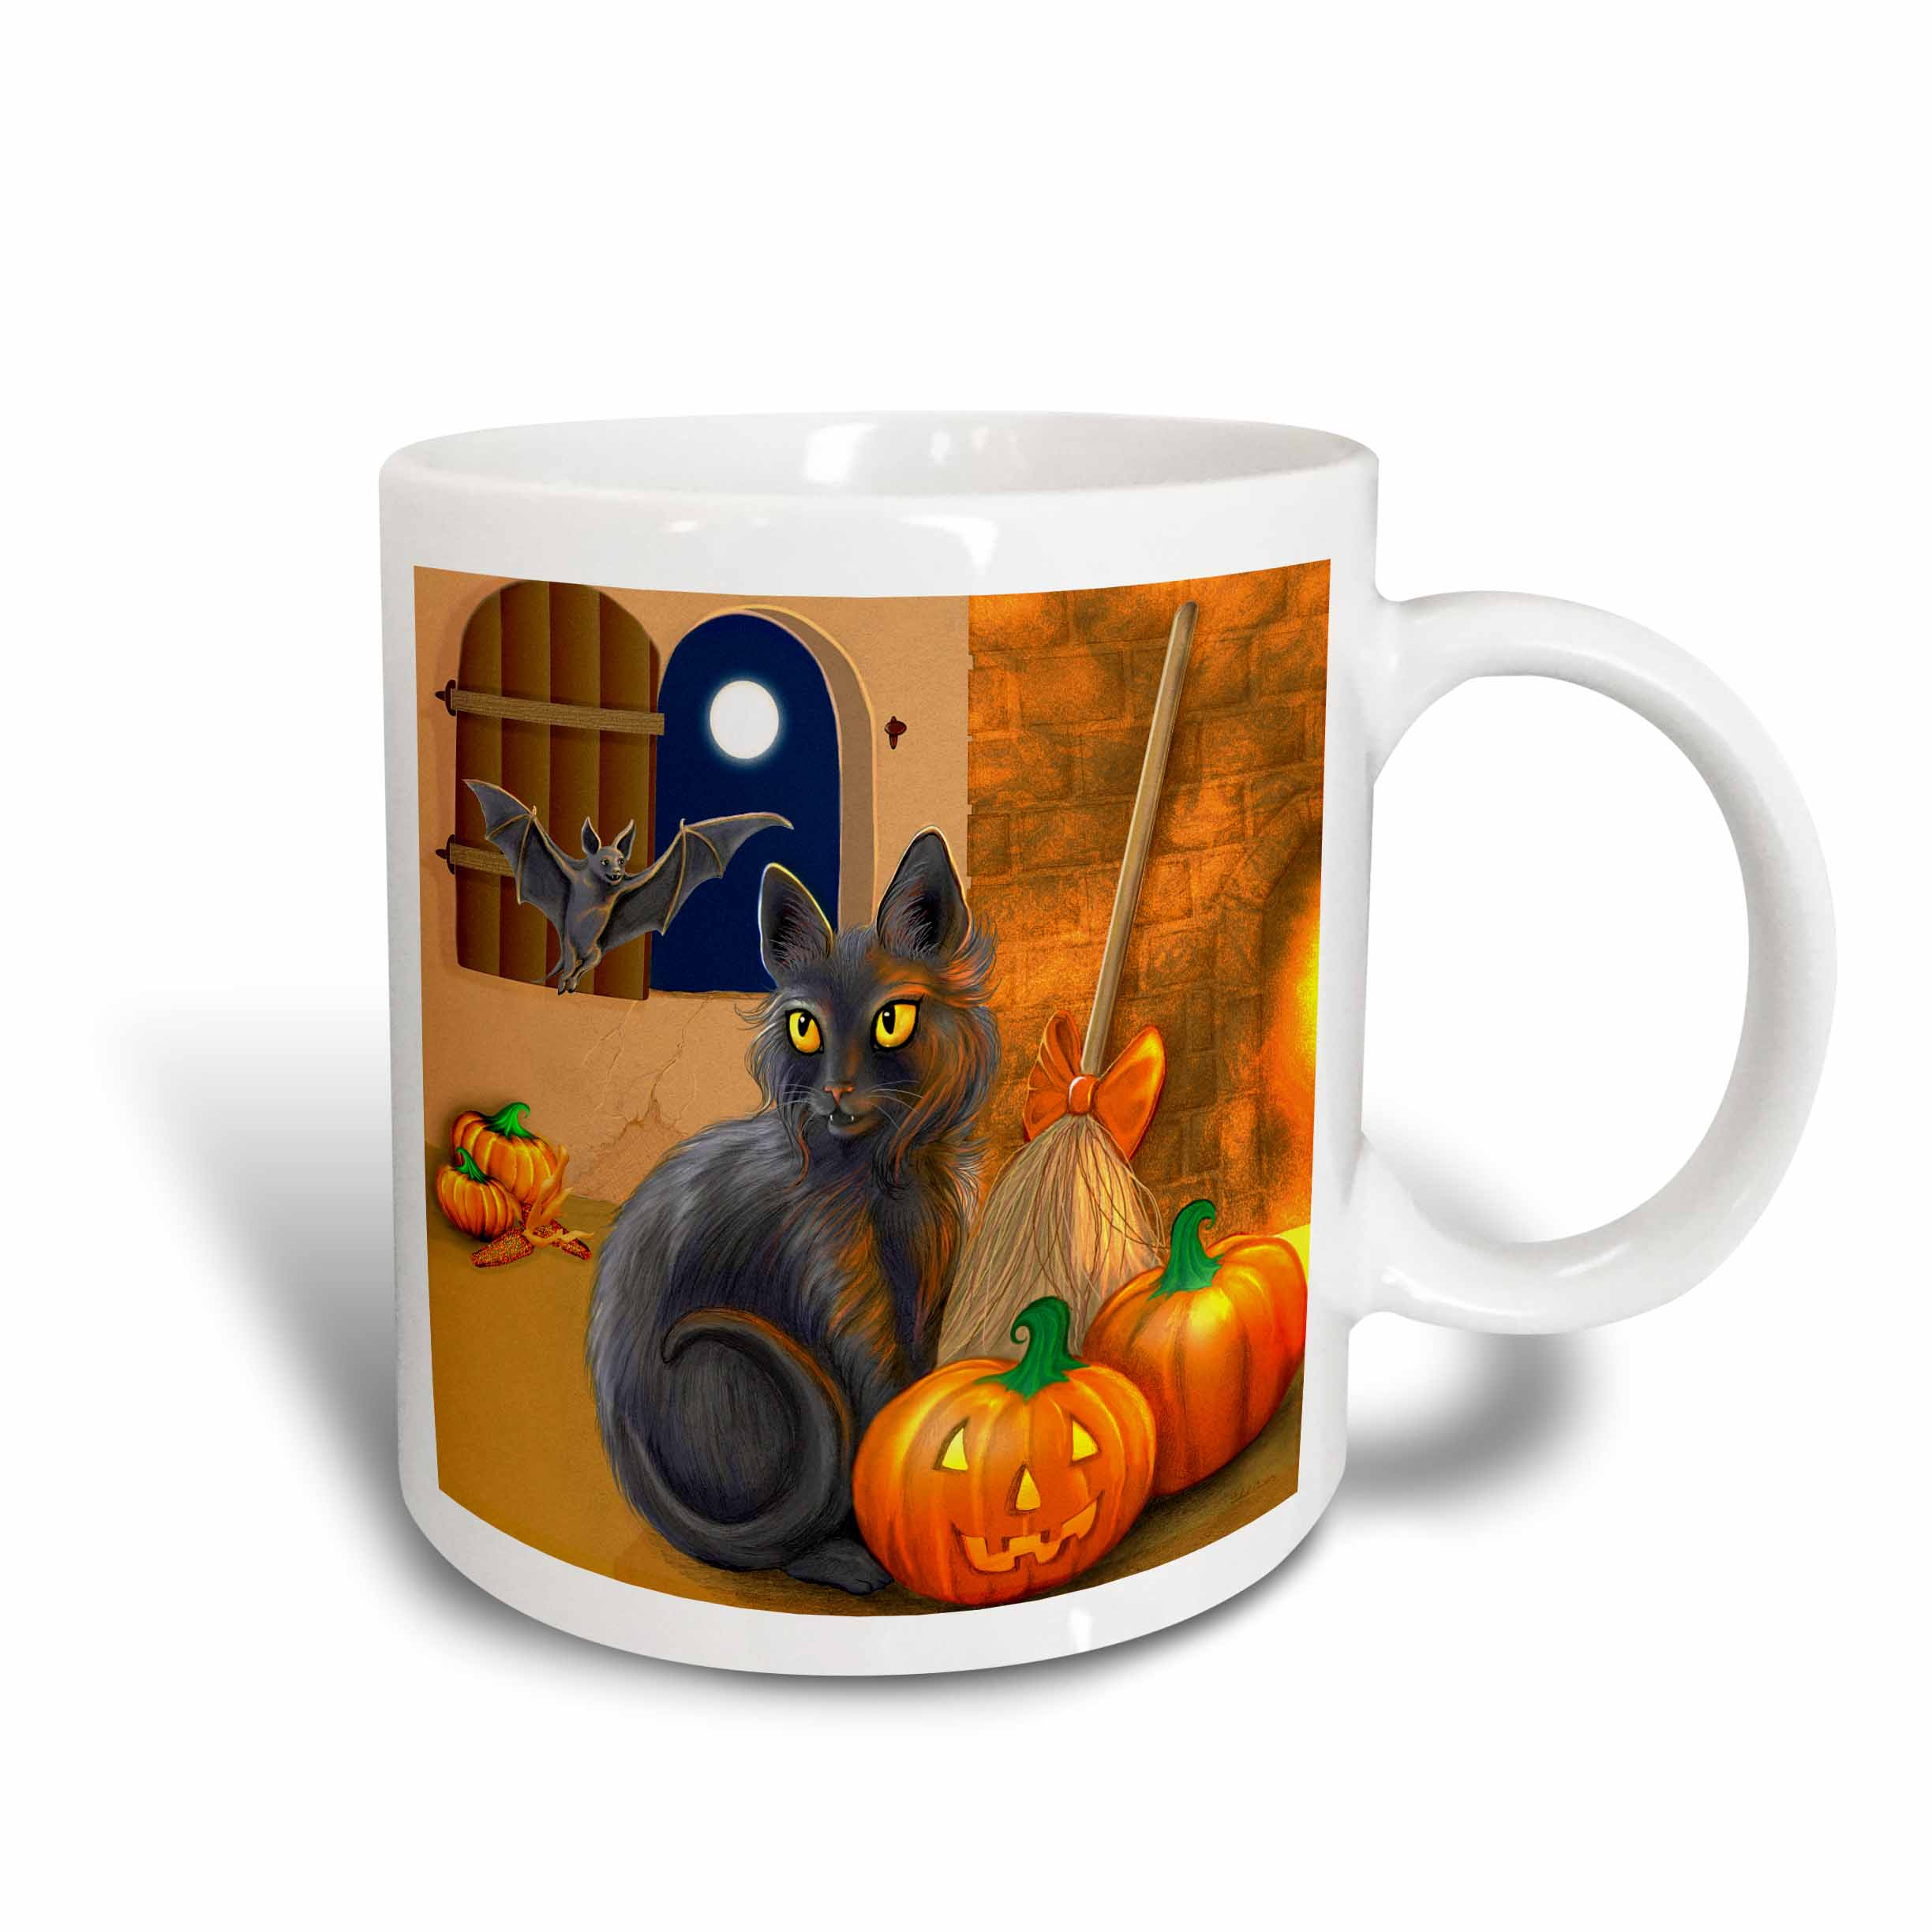 3dRose The Witchs Cat sits near a cozy fireplace entertaining her batty friend on Halloween night, Ceramic Mug, 15-ounce